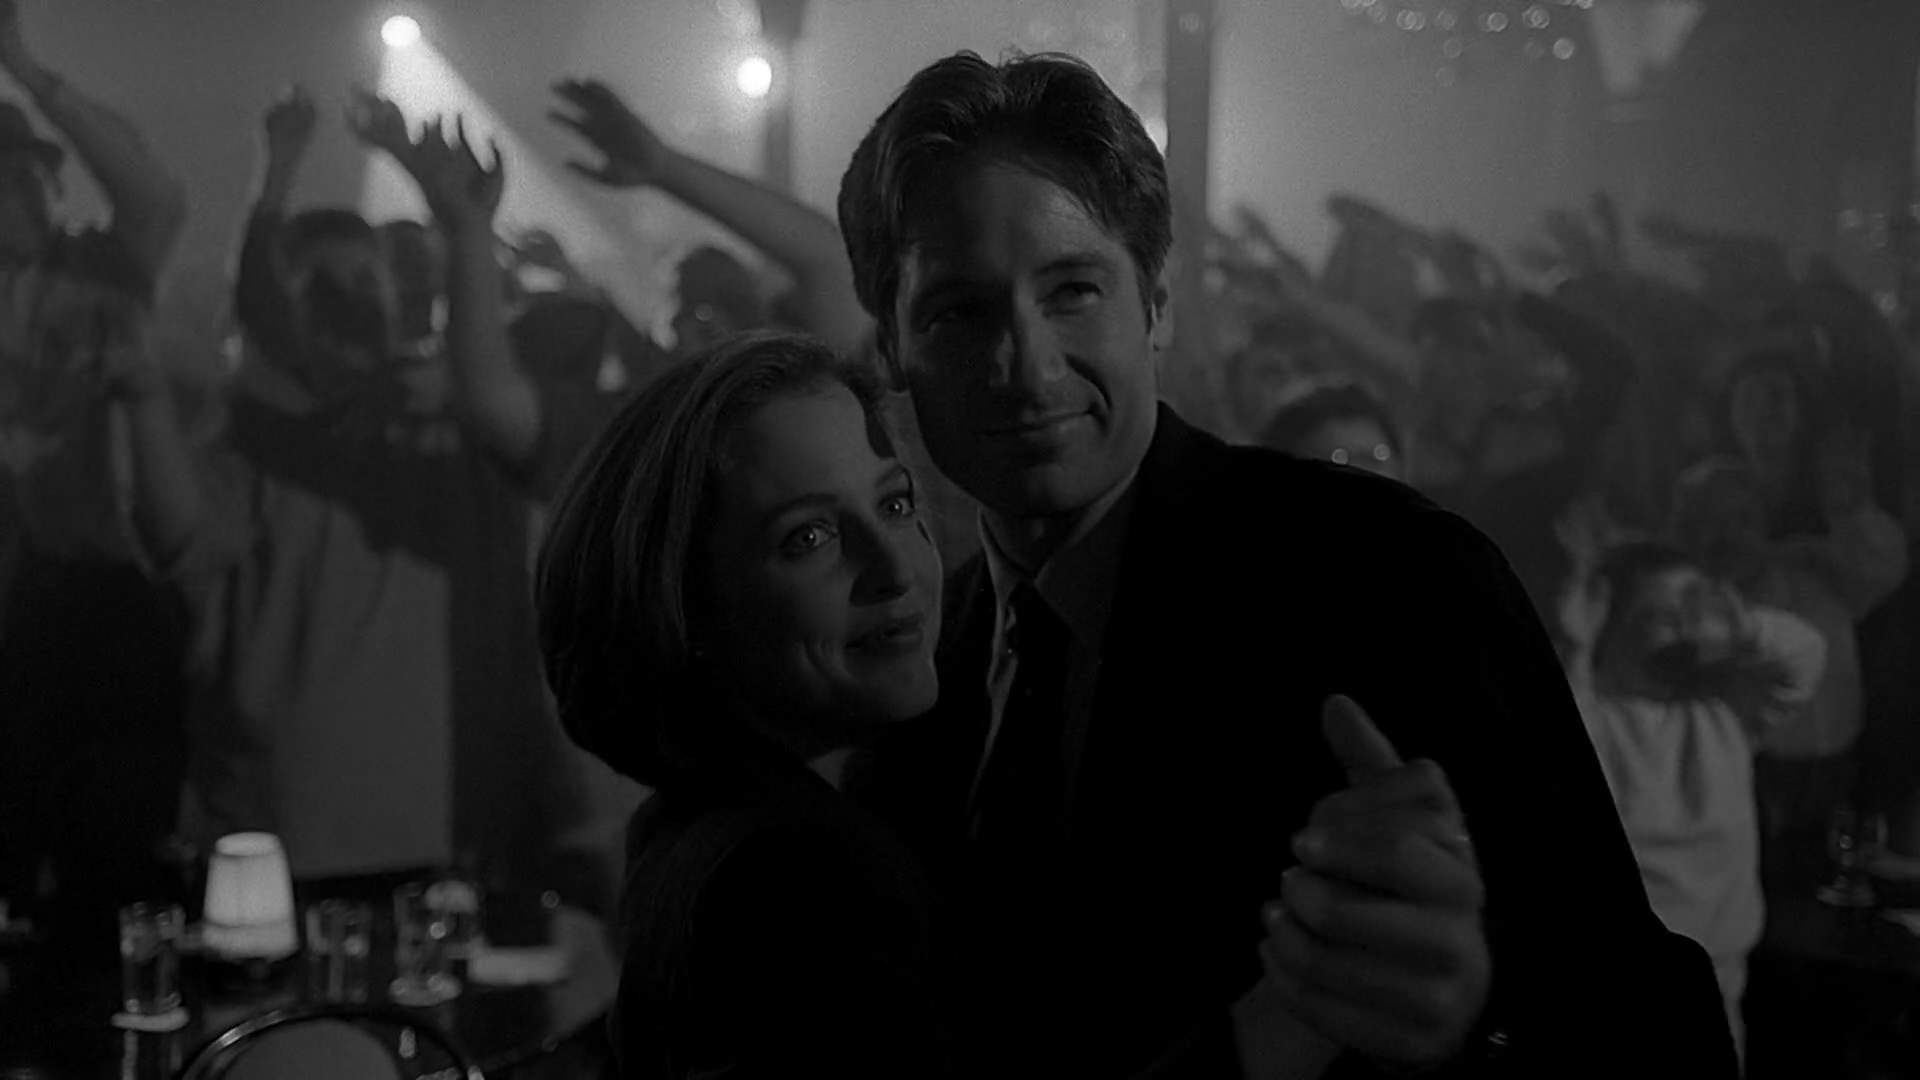 X Files Christmas Carol.Tuning In Episode 89 The X Files The Post Modern